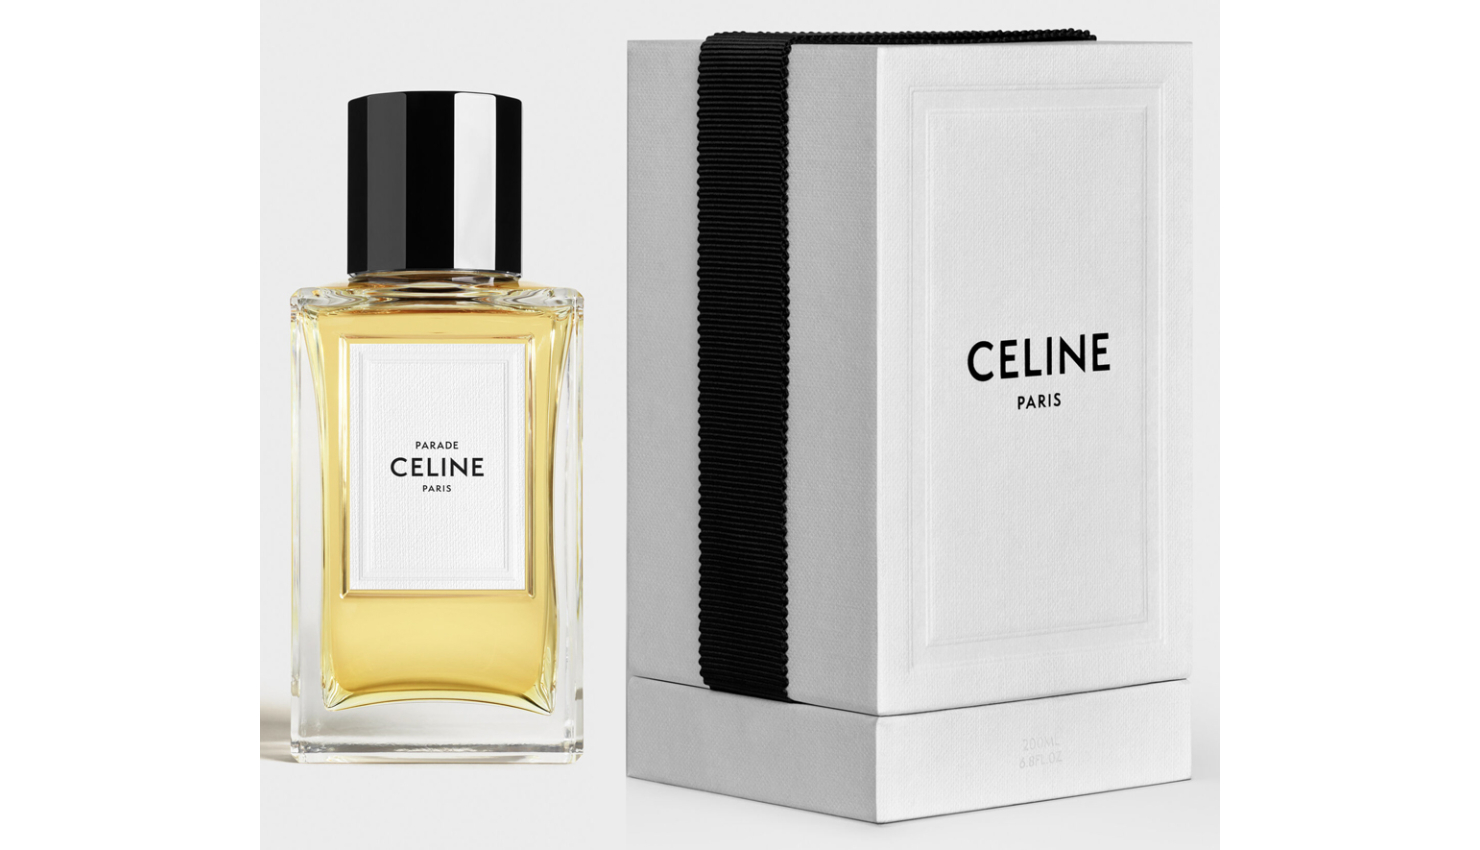 7 niche perfumes to share with your partner